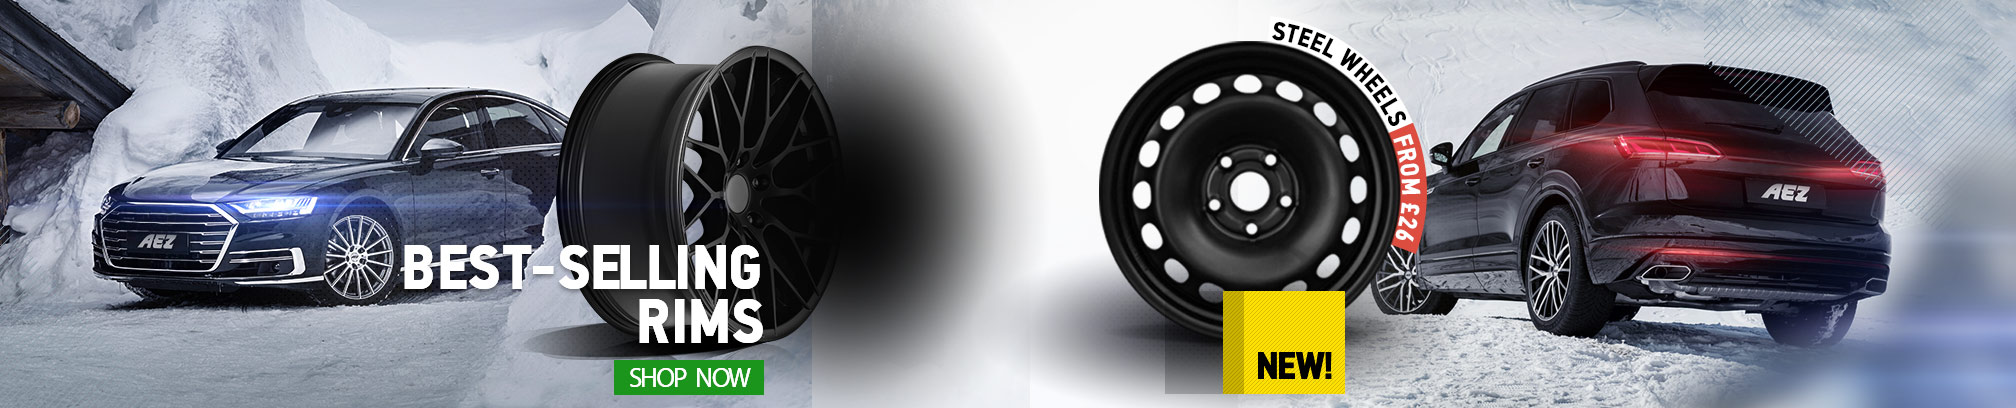 Best-selling rims - Shop now! Steel wheels from £26 | NEW!